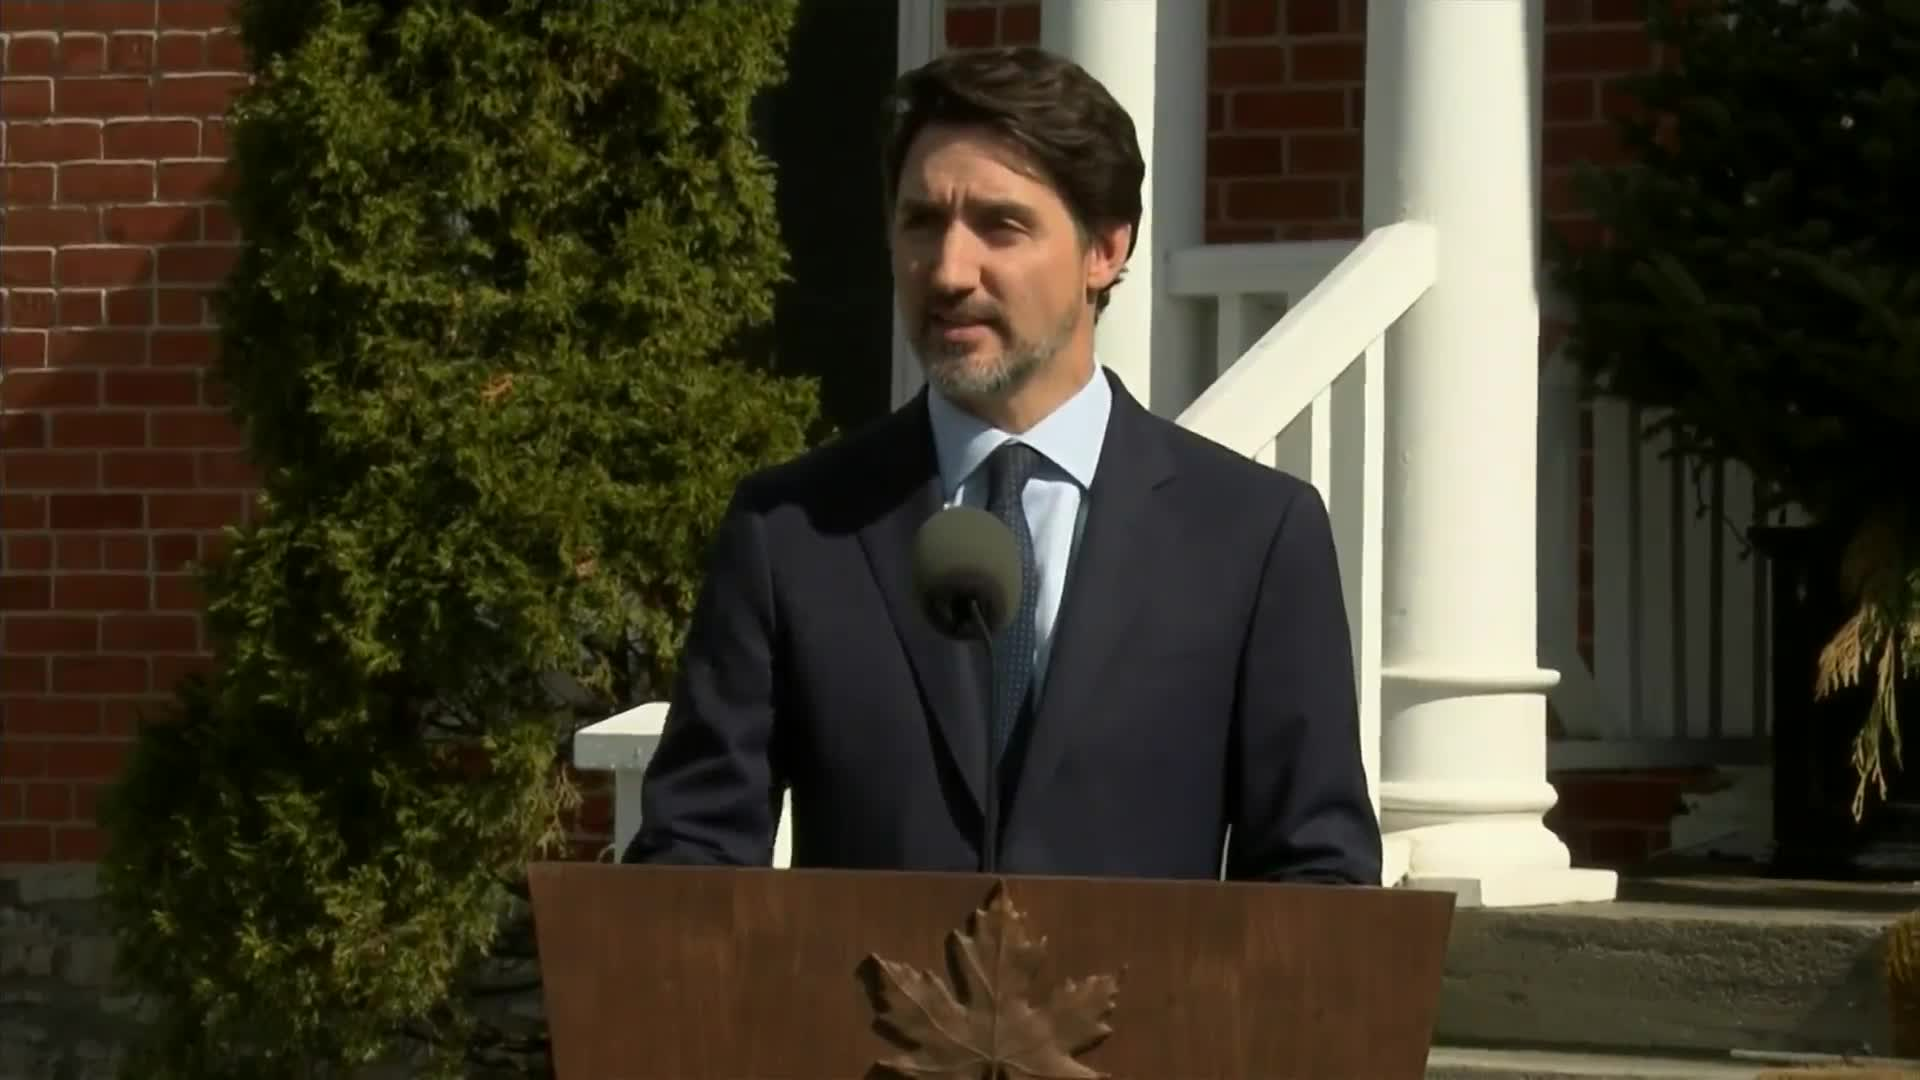 Canadian Prime Minister Justin Trudeau says he is closing Canada's borders to anyone who is not a citizen or a permanent resident amid the coronavirus pandemic.